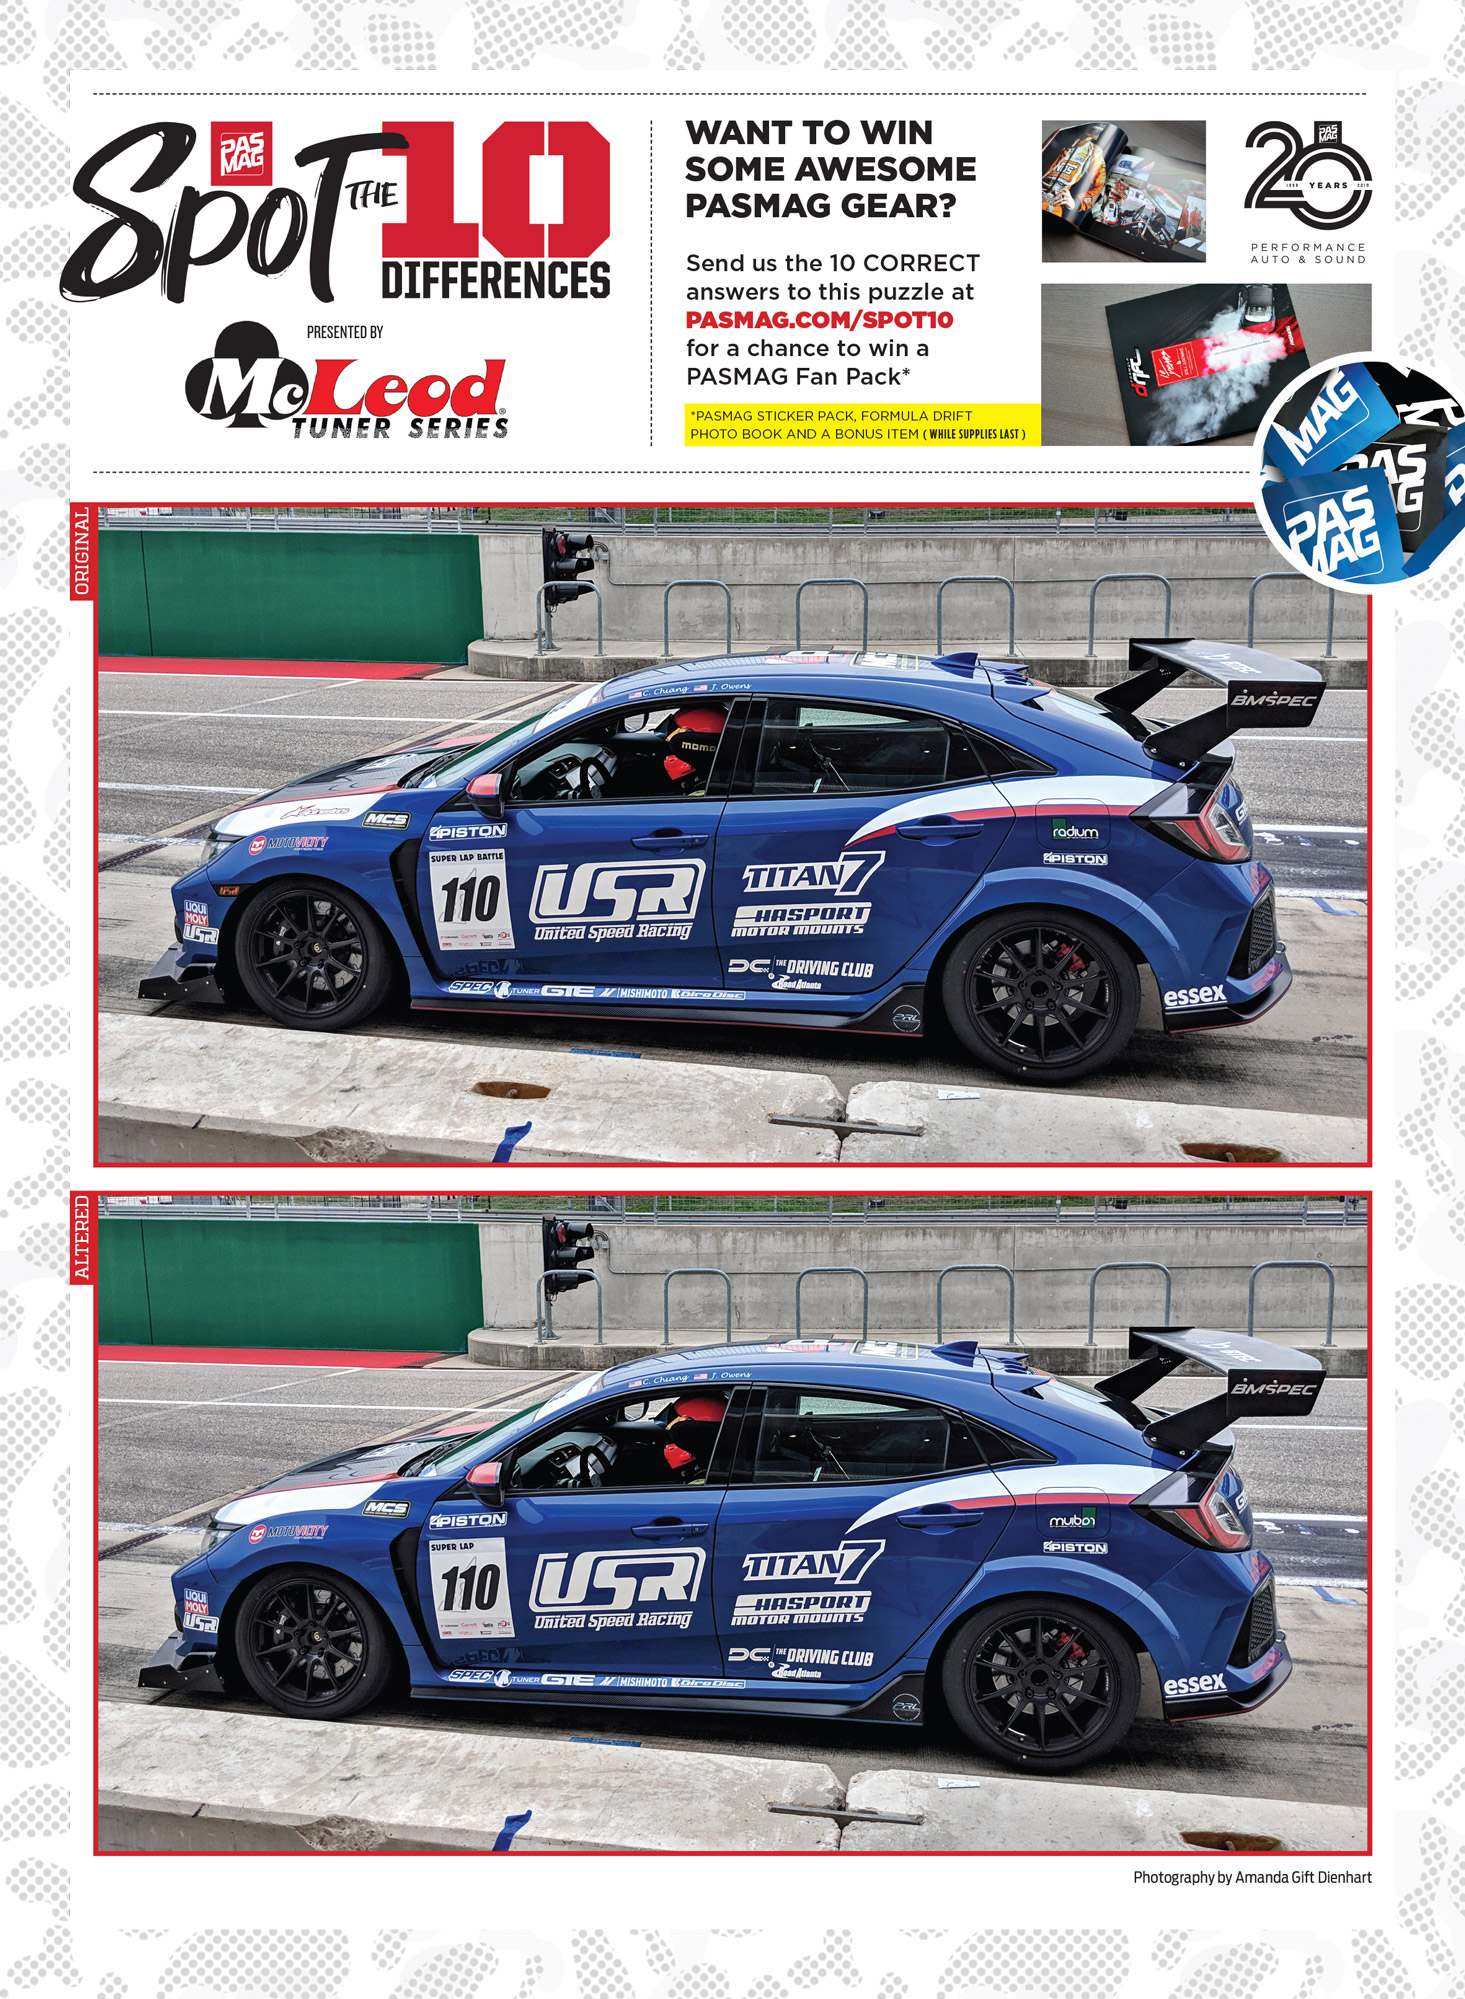 PASMAG Spot the Differences Apr 30 2020 United Speed Racing 2017 Honda Civic Type R FK8